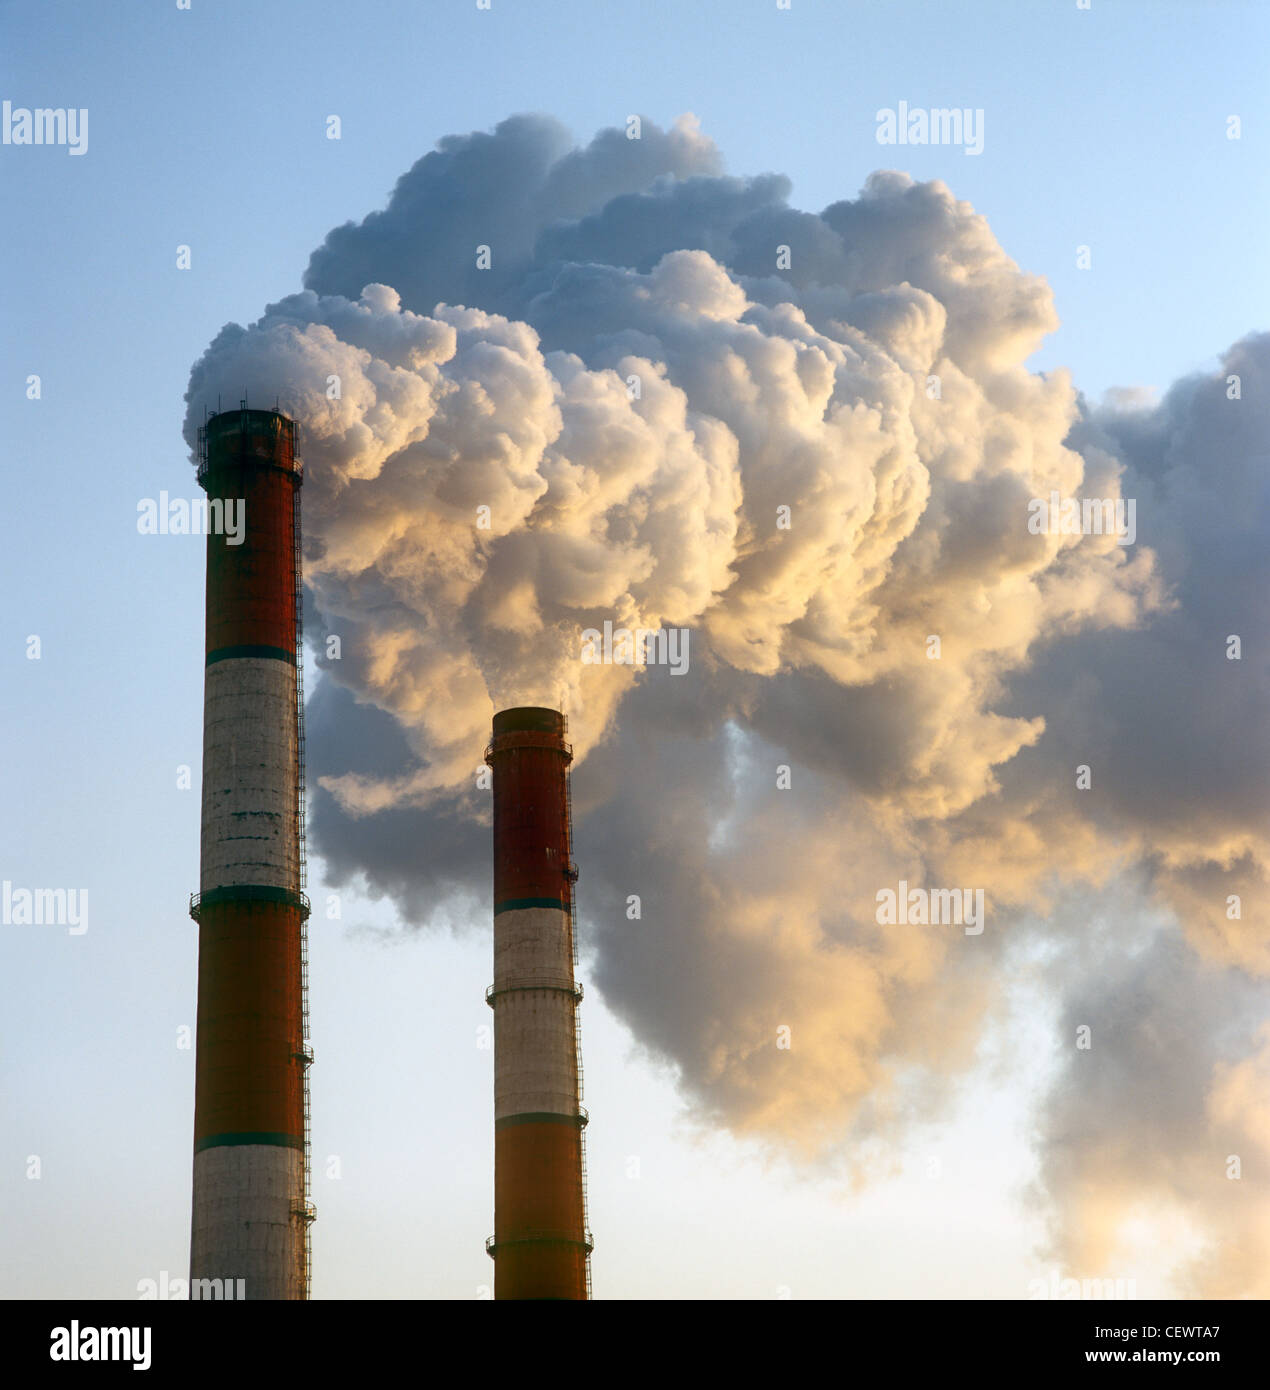 Air pollution by smoke coming out of two factory chimneys. - Stock Image